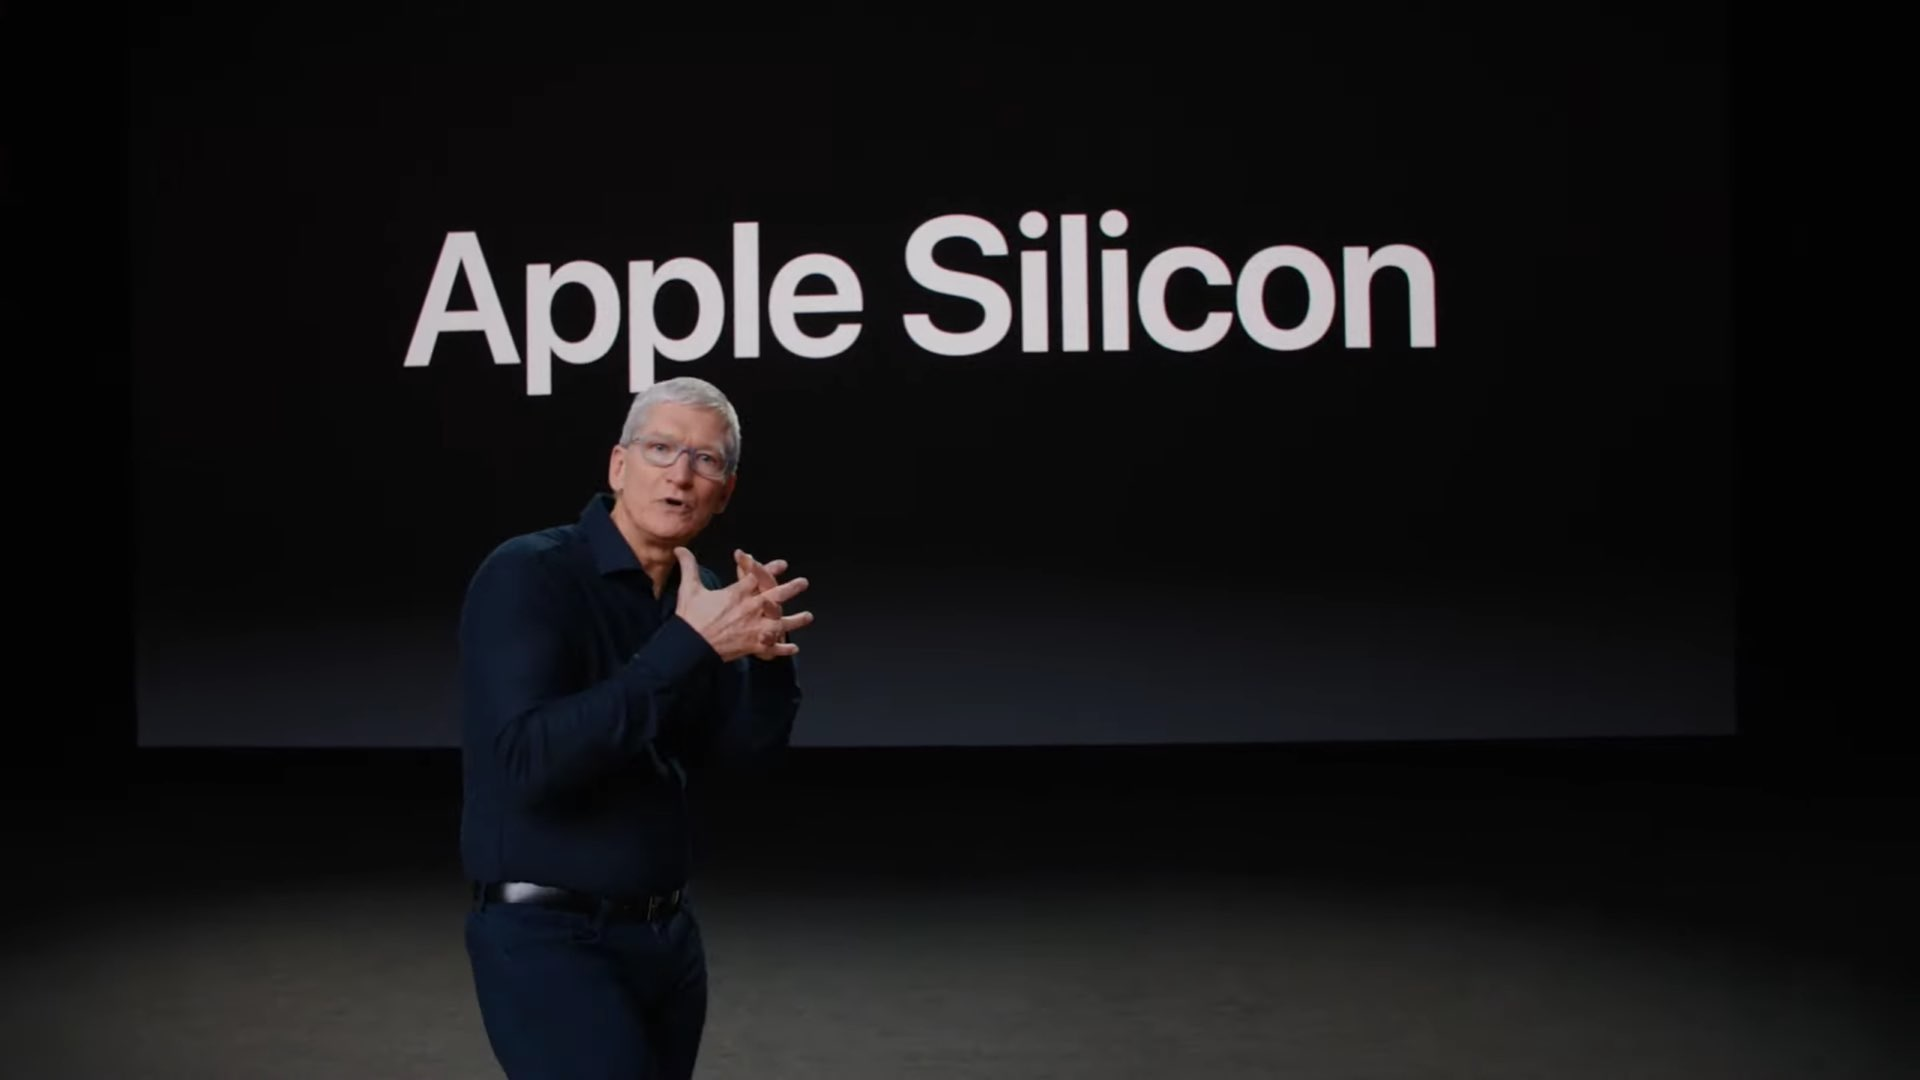 """A still from Apple WWDC20 video showing CEO Tim Cook in front of a slide showing the text """"Apple silicon"""""""